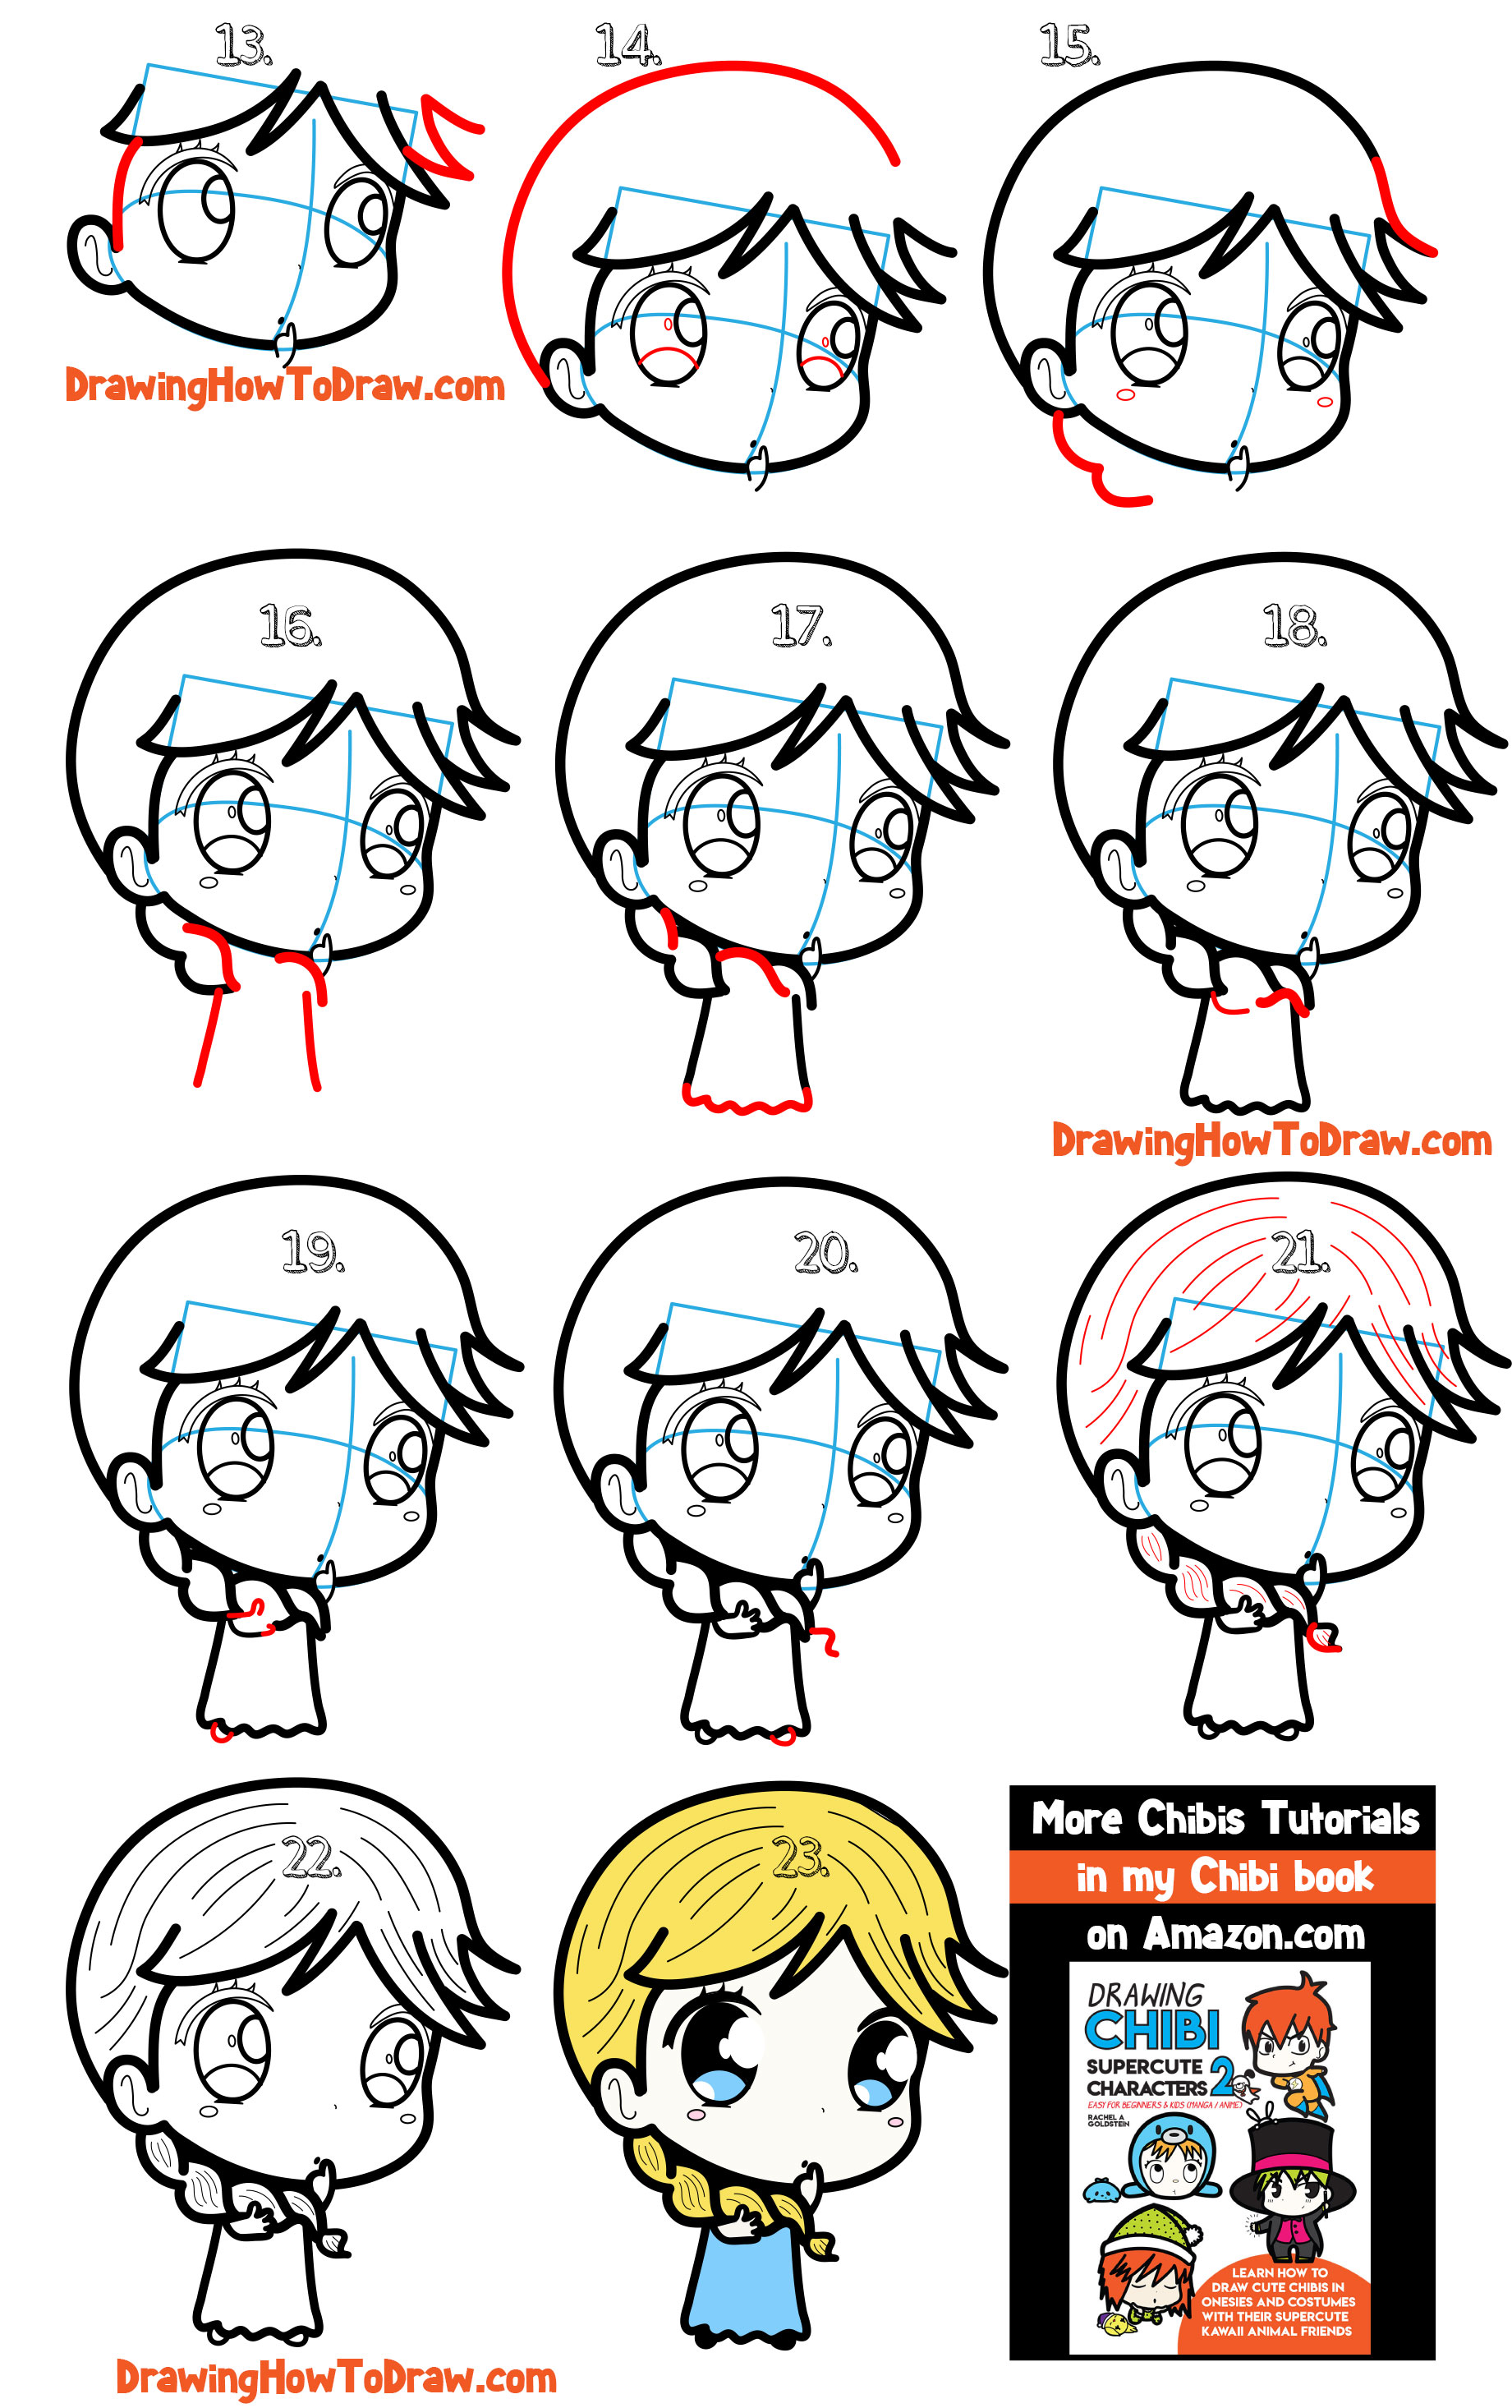 Learn How to Draw a Supercute Chibi Girl with Simple Steps Drawing Tutorial for Kids & Beginners